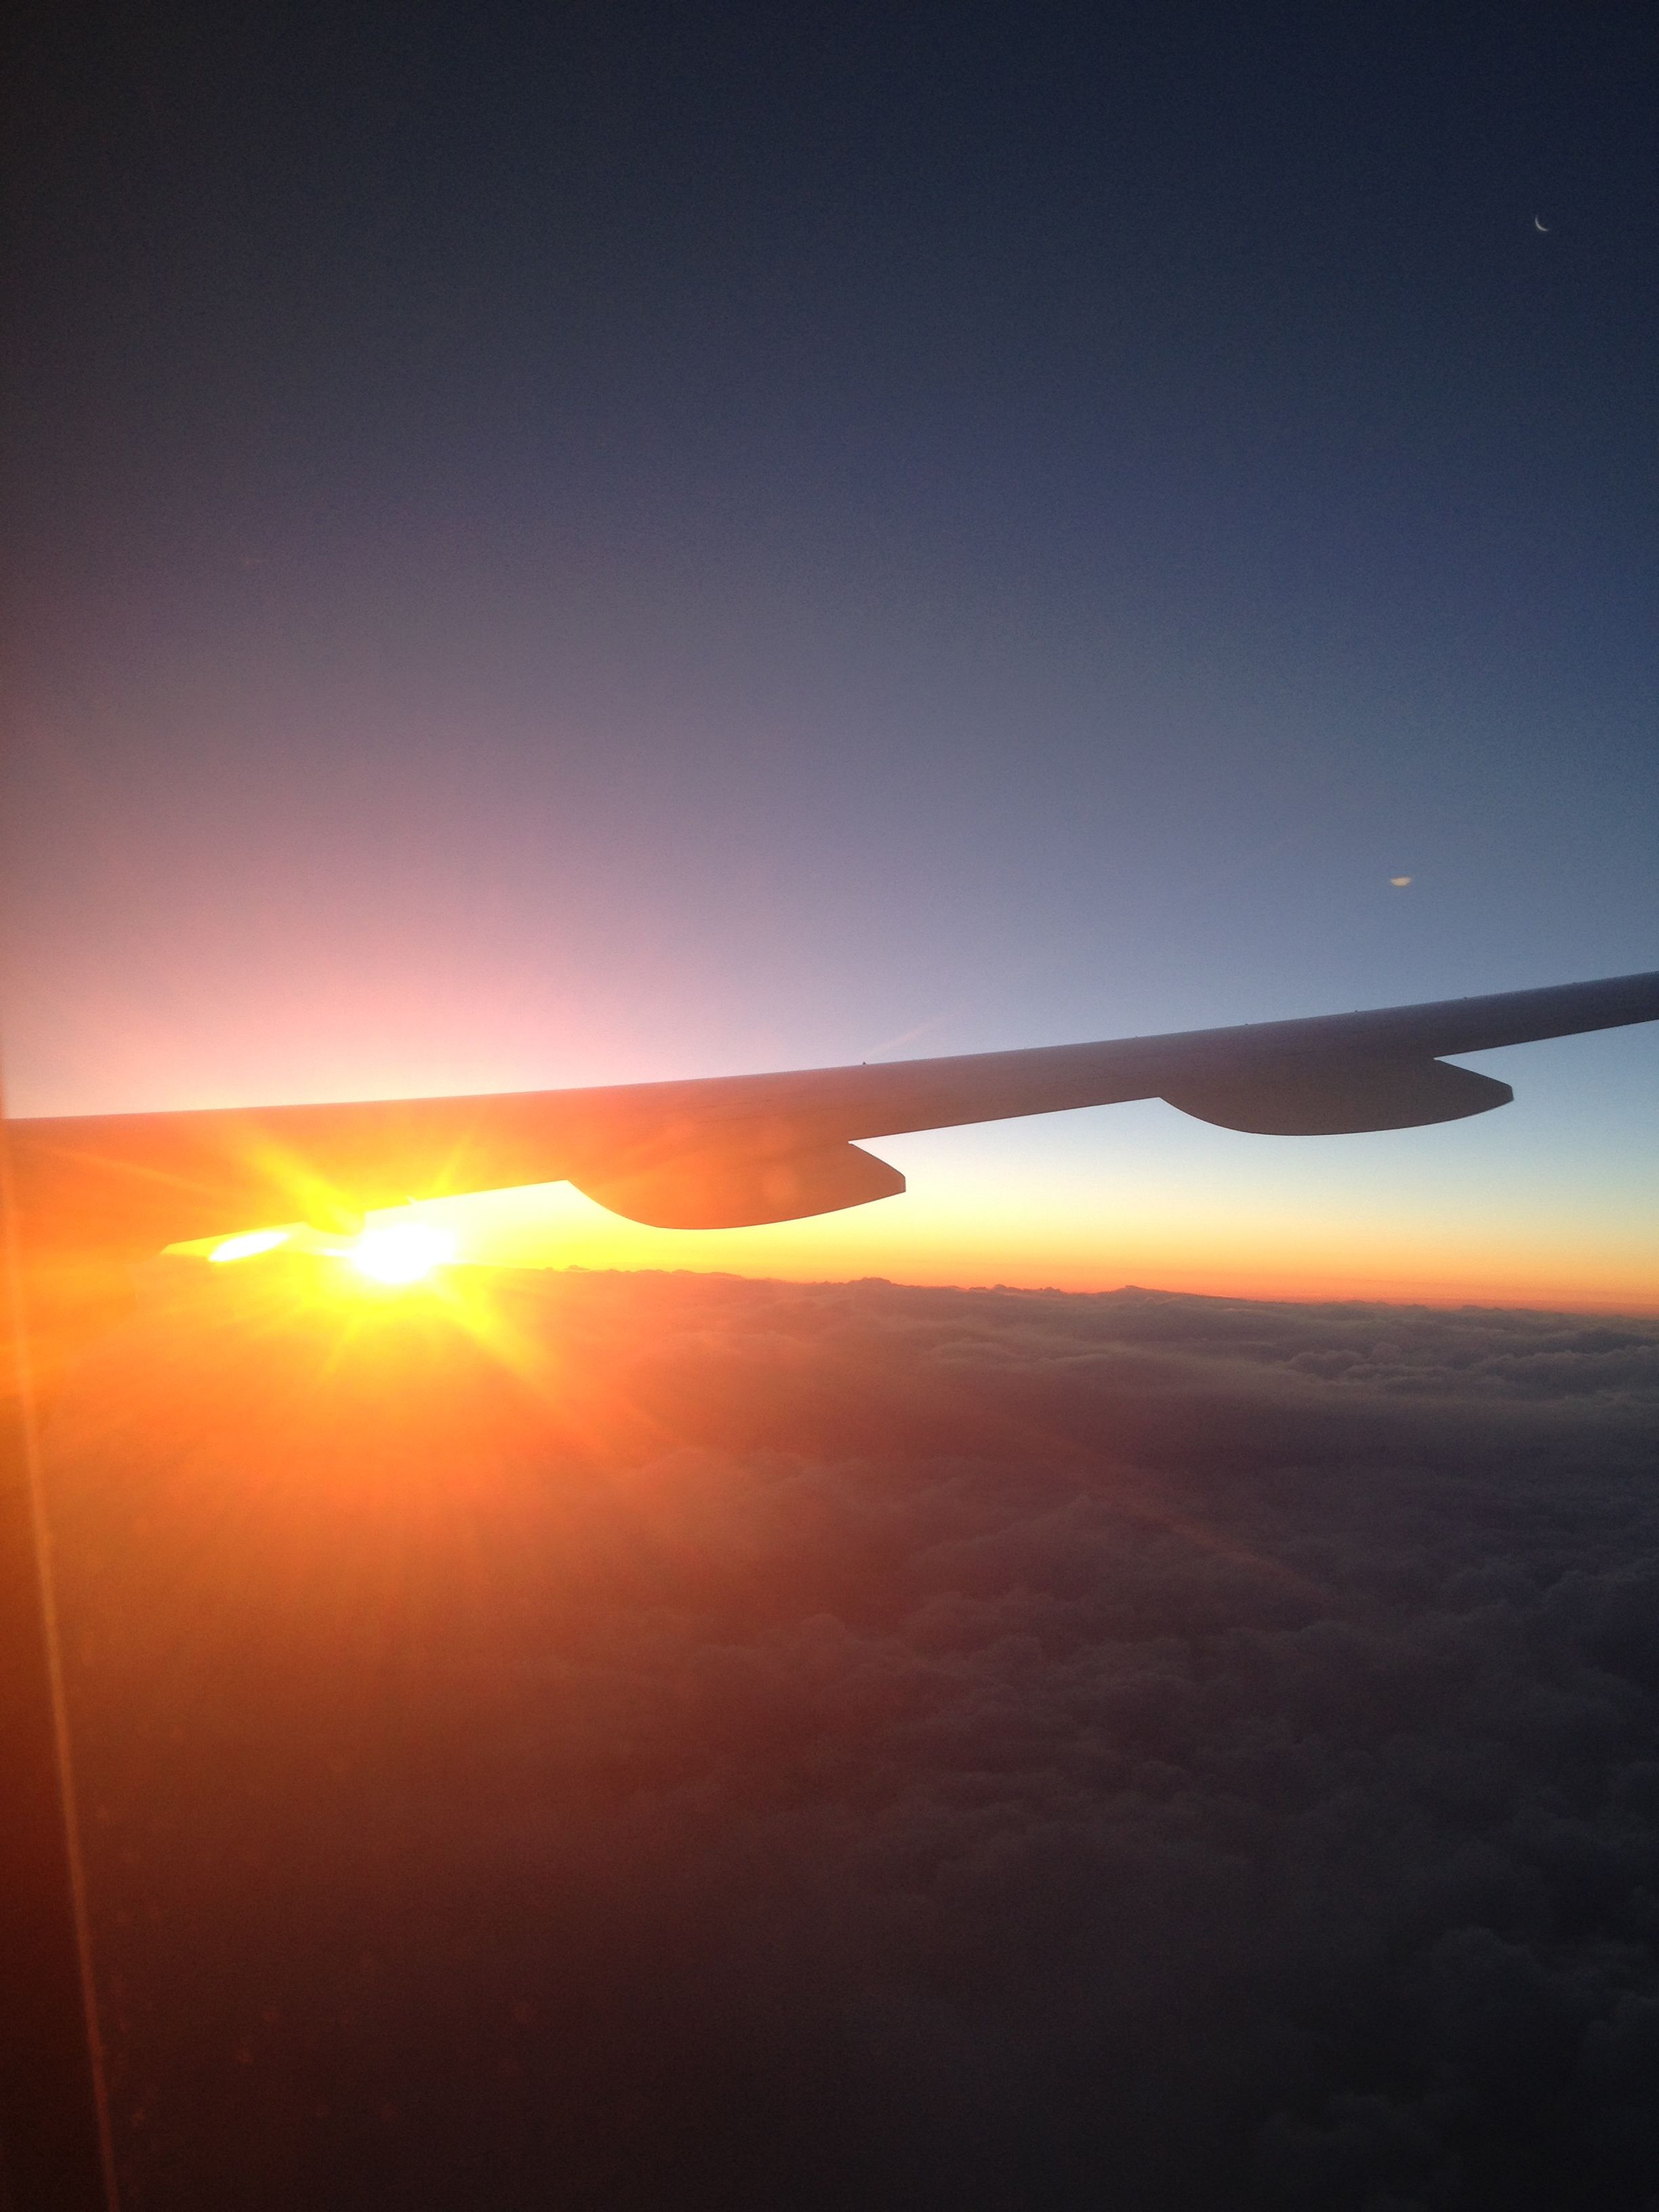 Photograph from a plane window of the sunrise over the